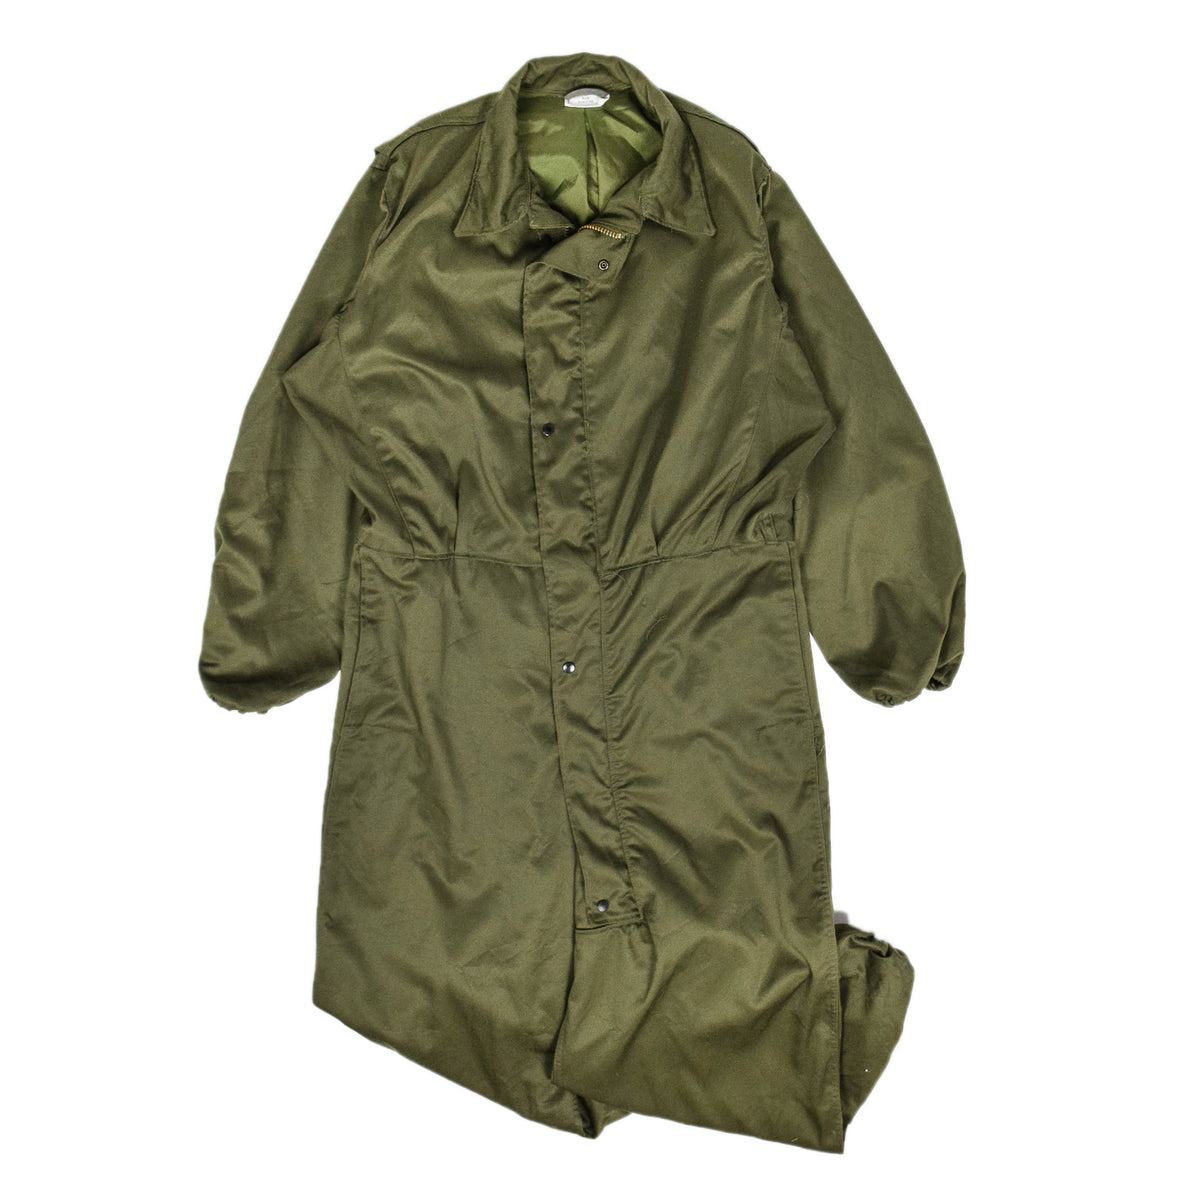 Vintage 80s Deadstock US Army Mechanic's Cold Weather Coveralls Green M / L front